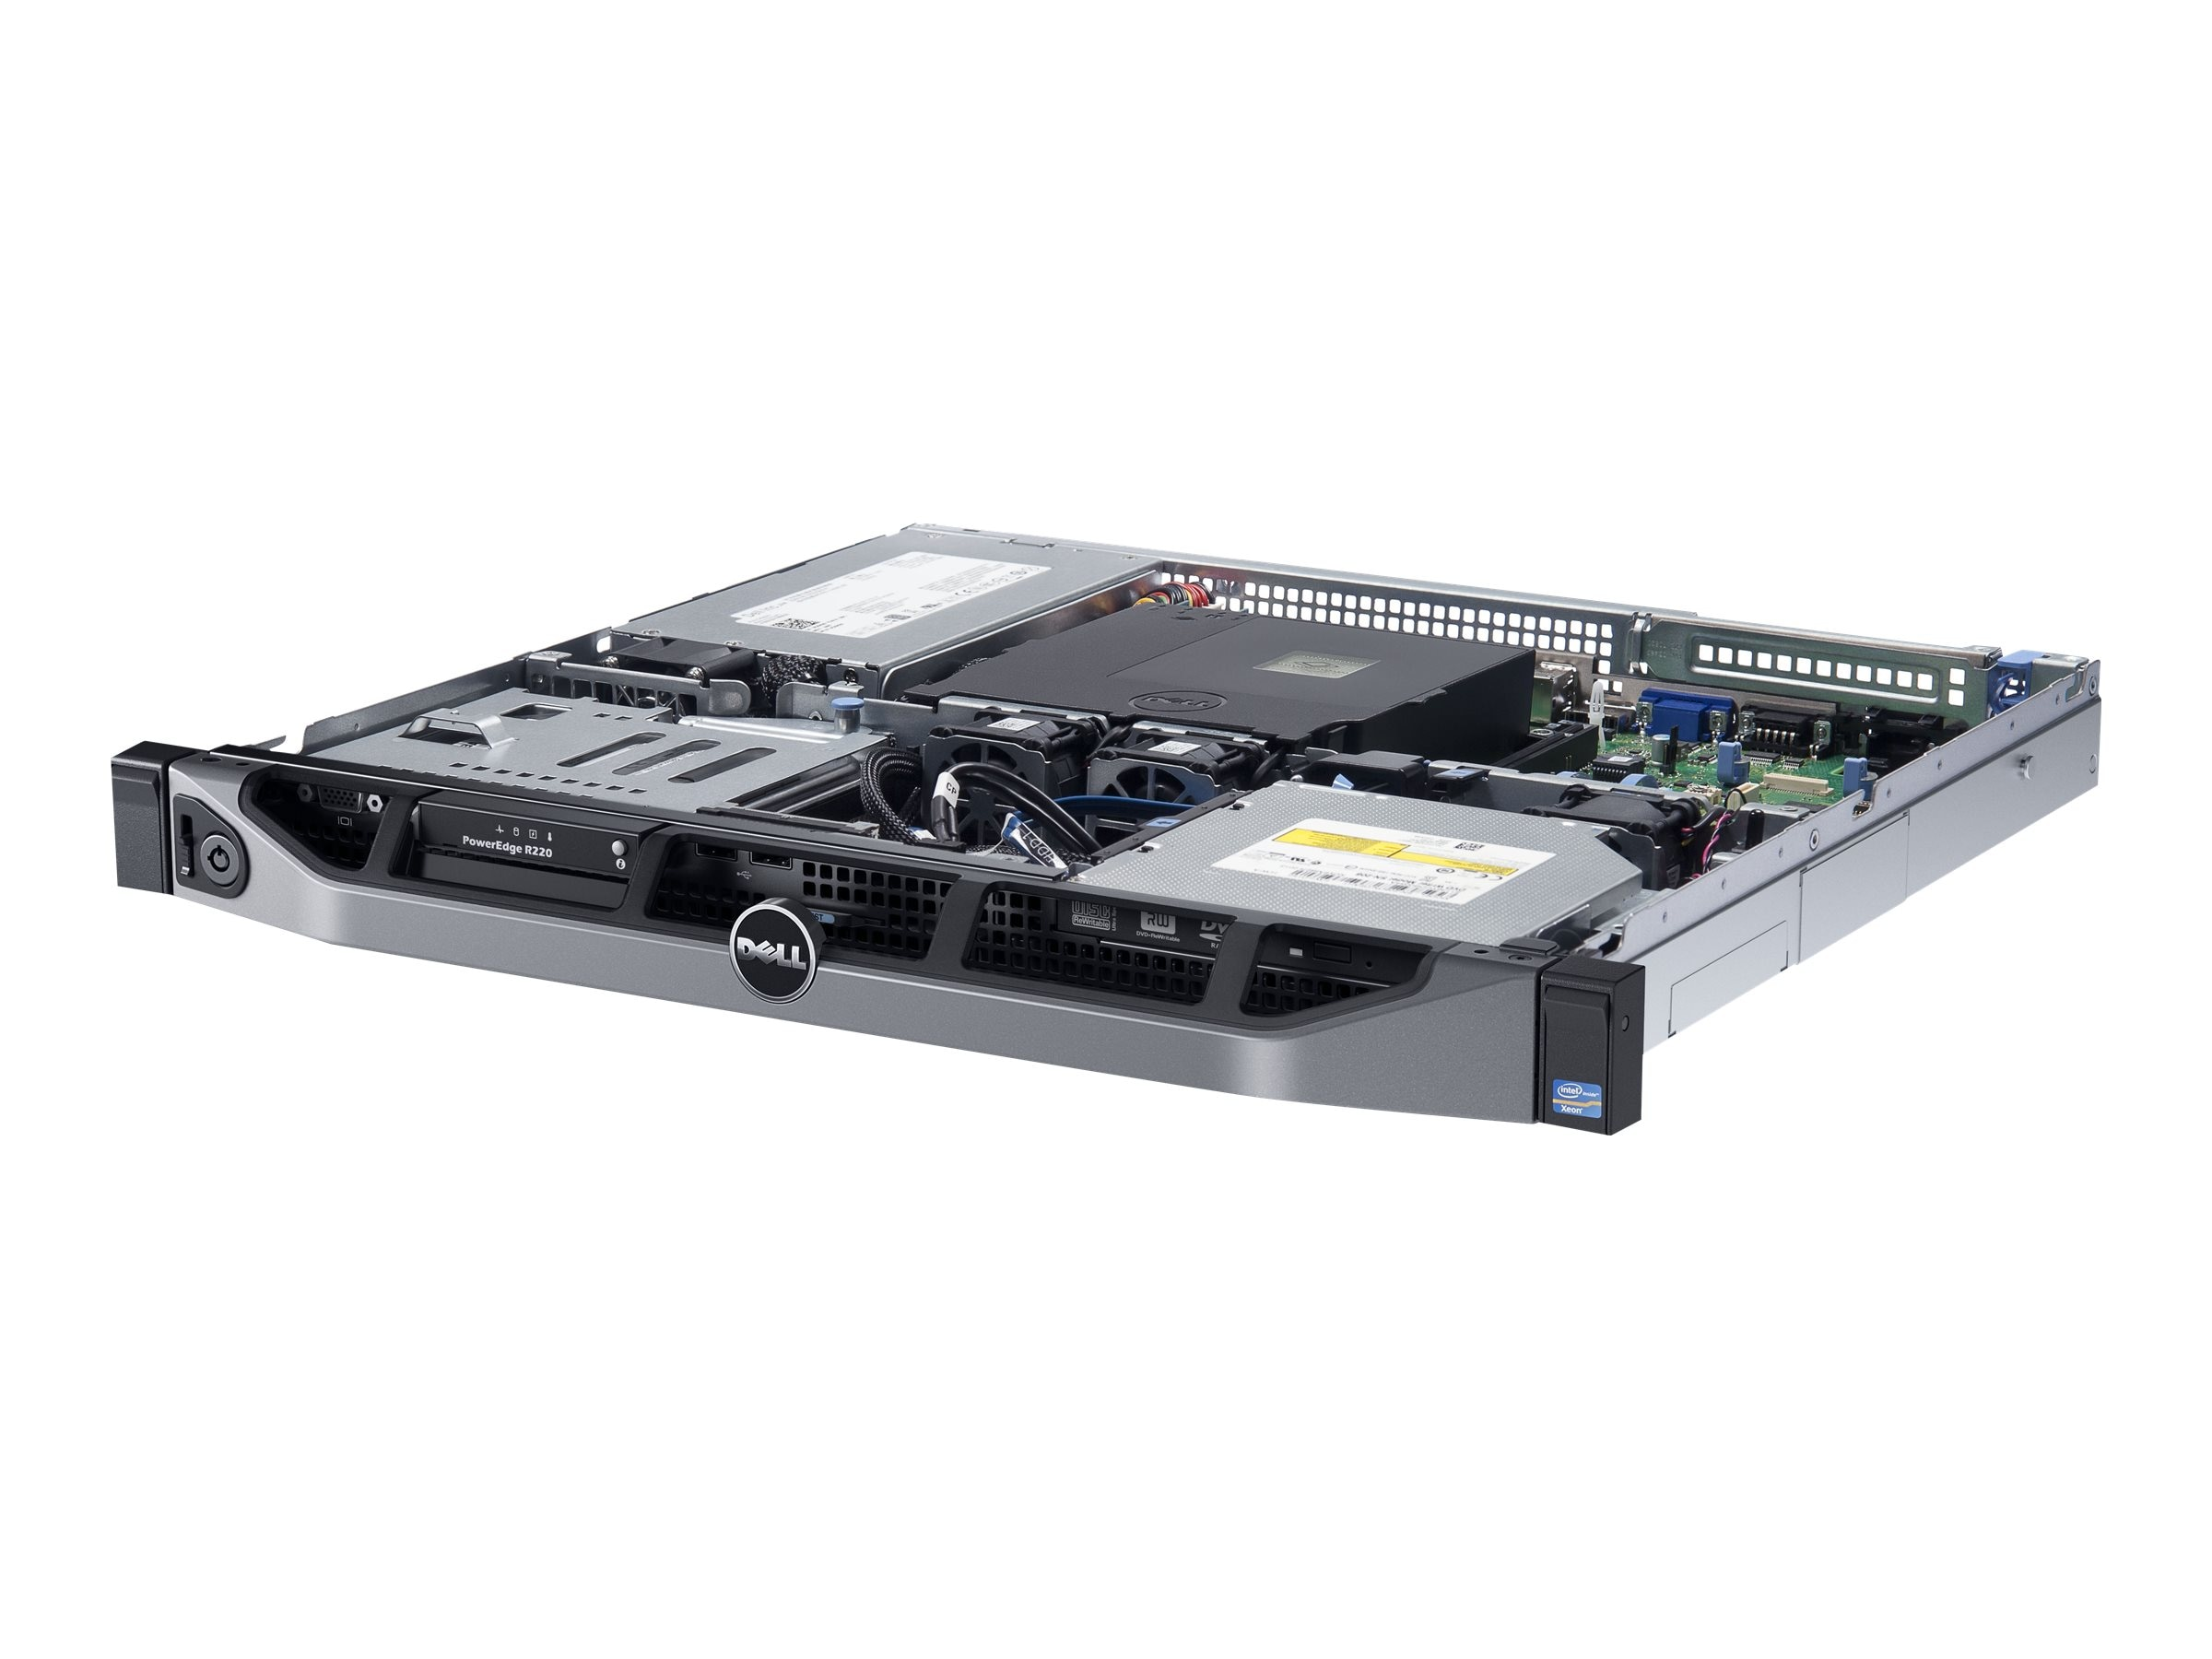 Dell PowerEdge R220 1U RM Xeon QC E3-1220 v3 3.1GHz 8GB 1x1TB SATA 2x3.5 DC Bays DVD 2xGbE 250W